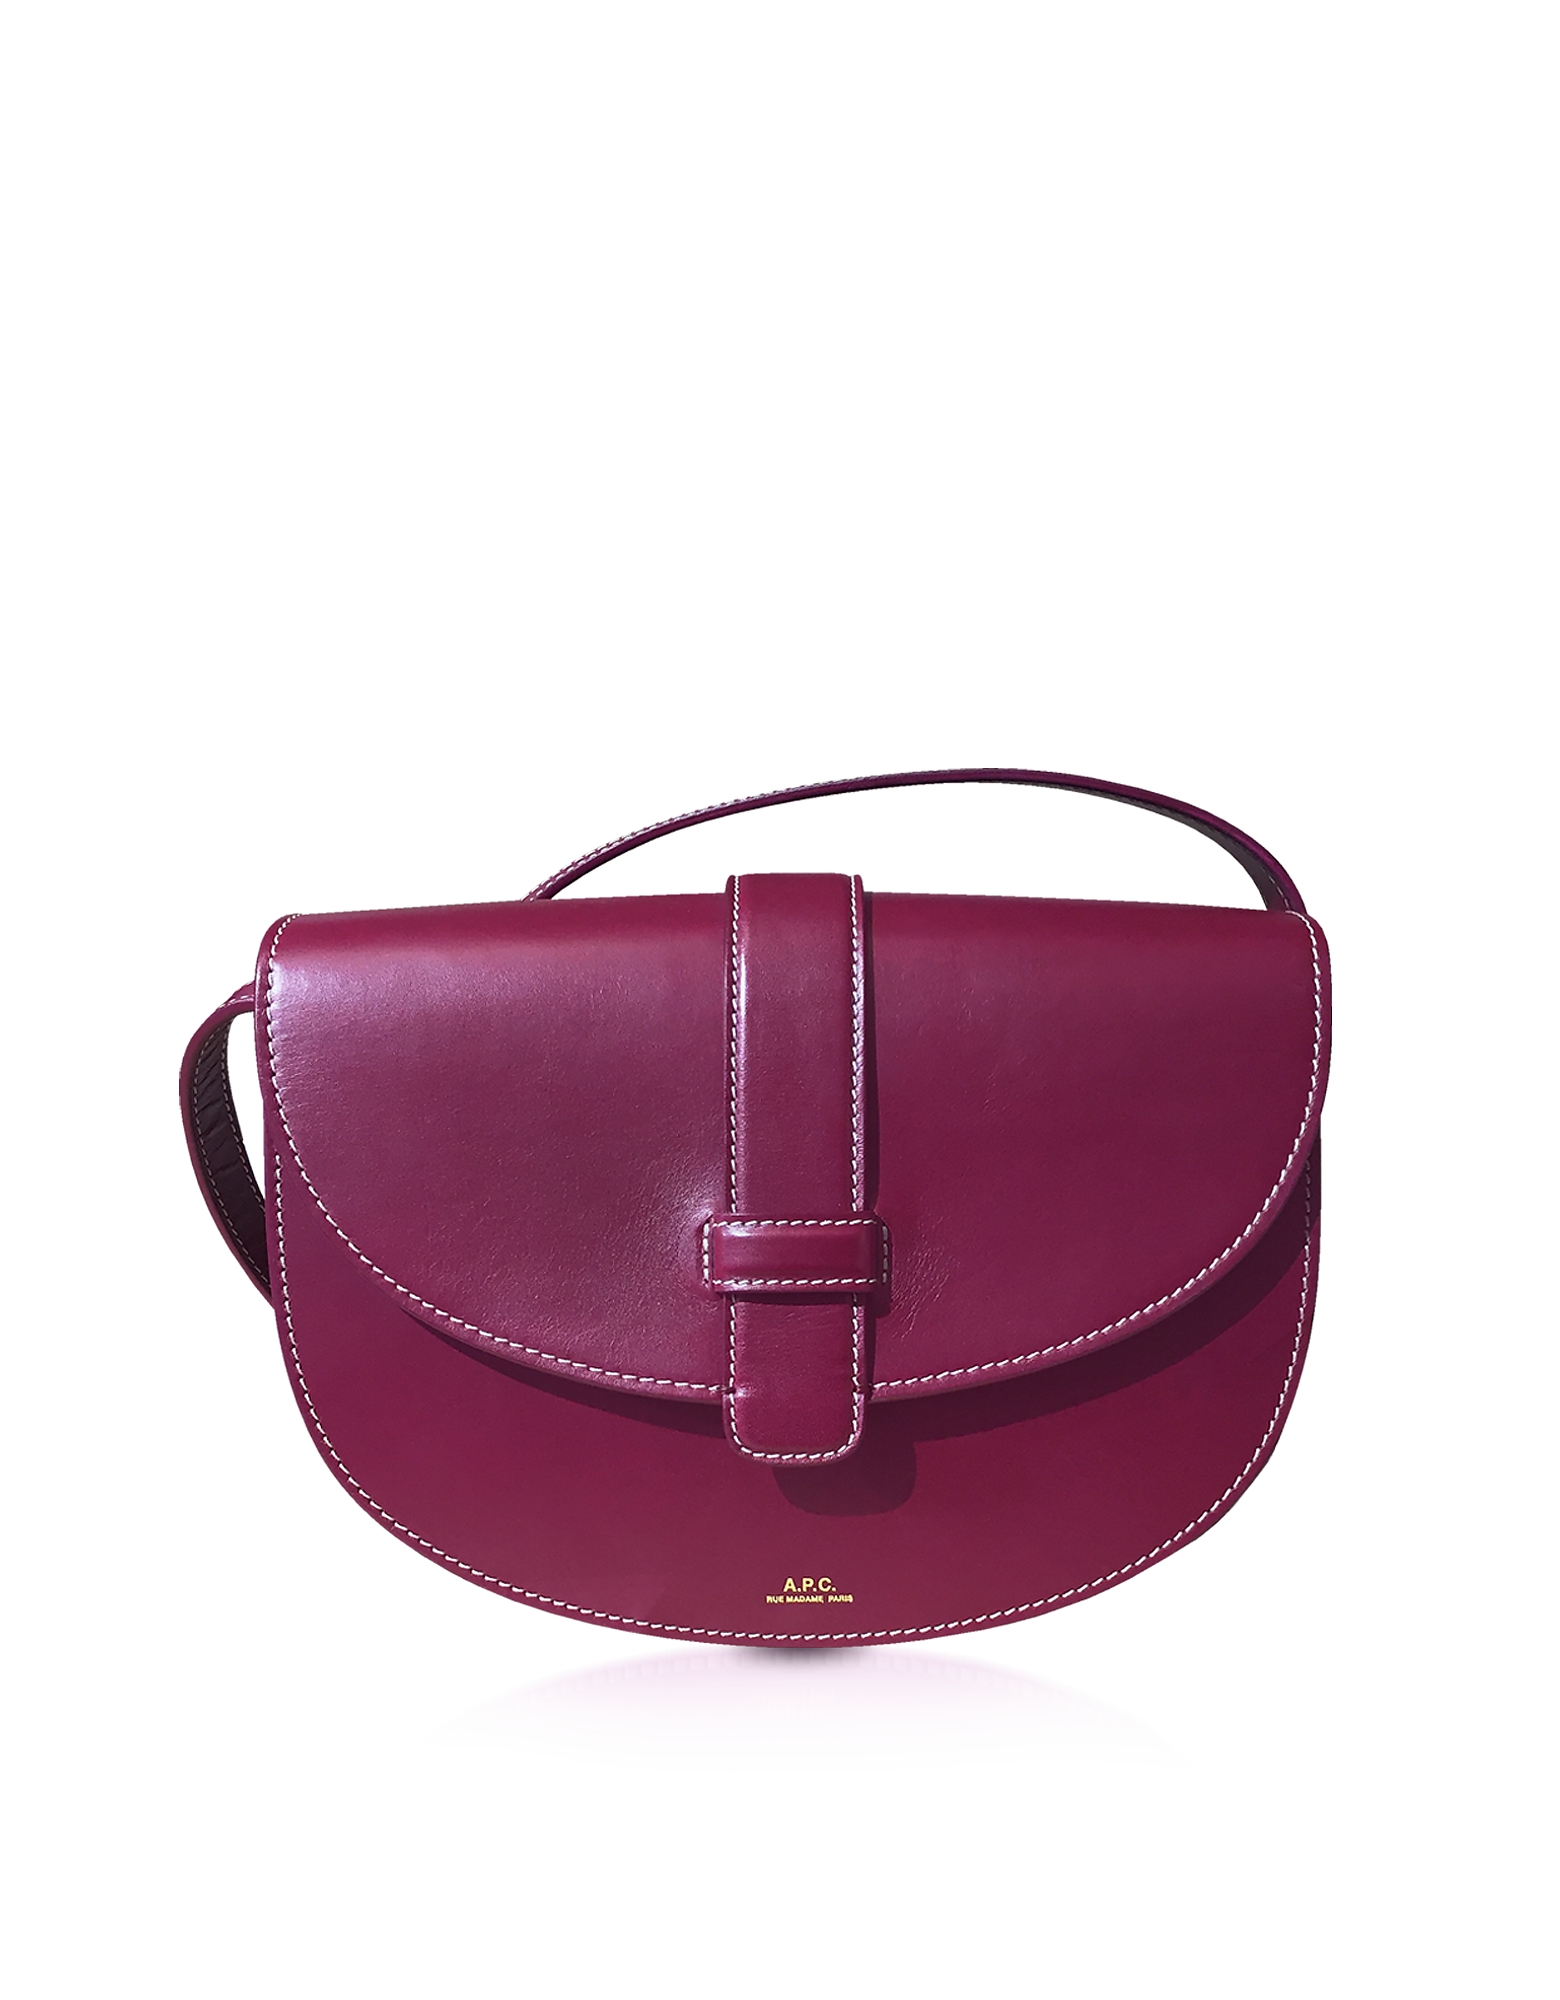 A.P.C. Handbags, Eloise Genuine Leather Shoulder Bag